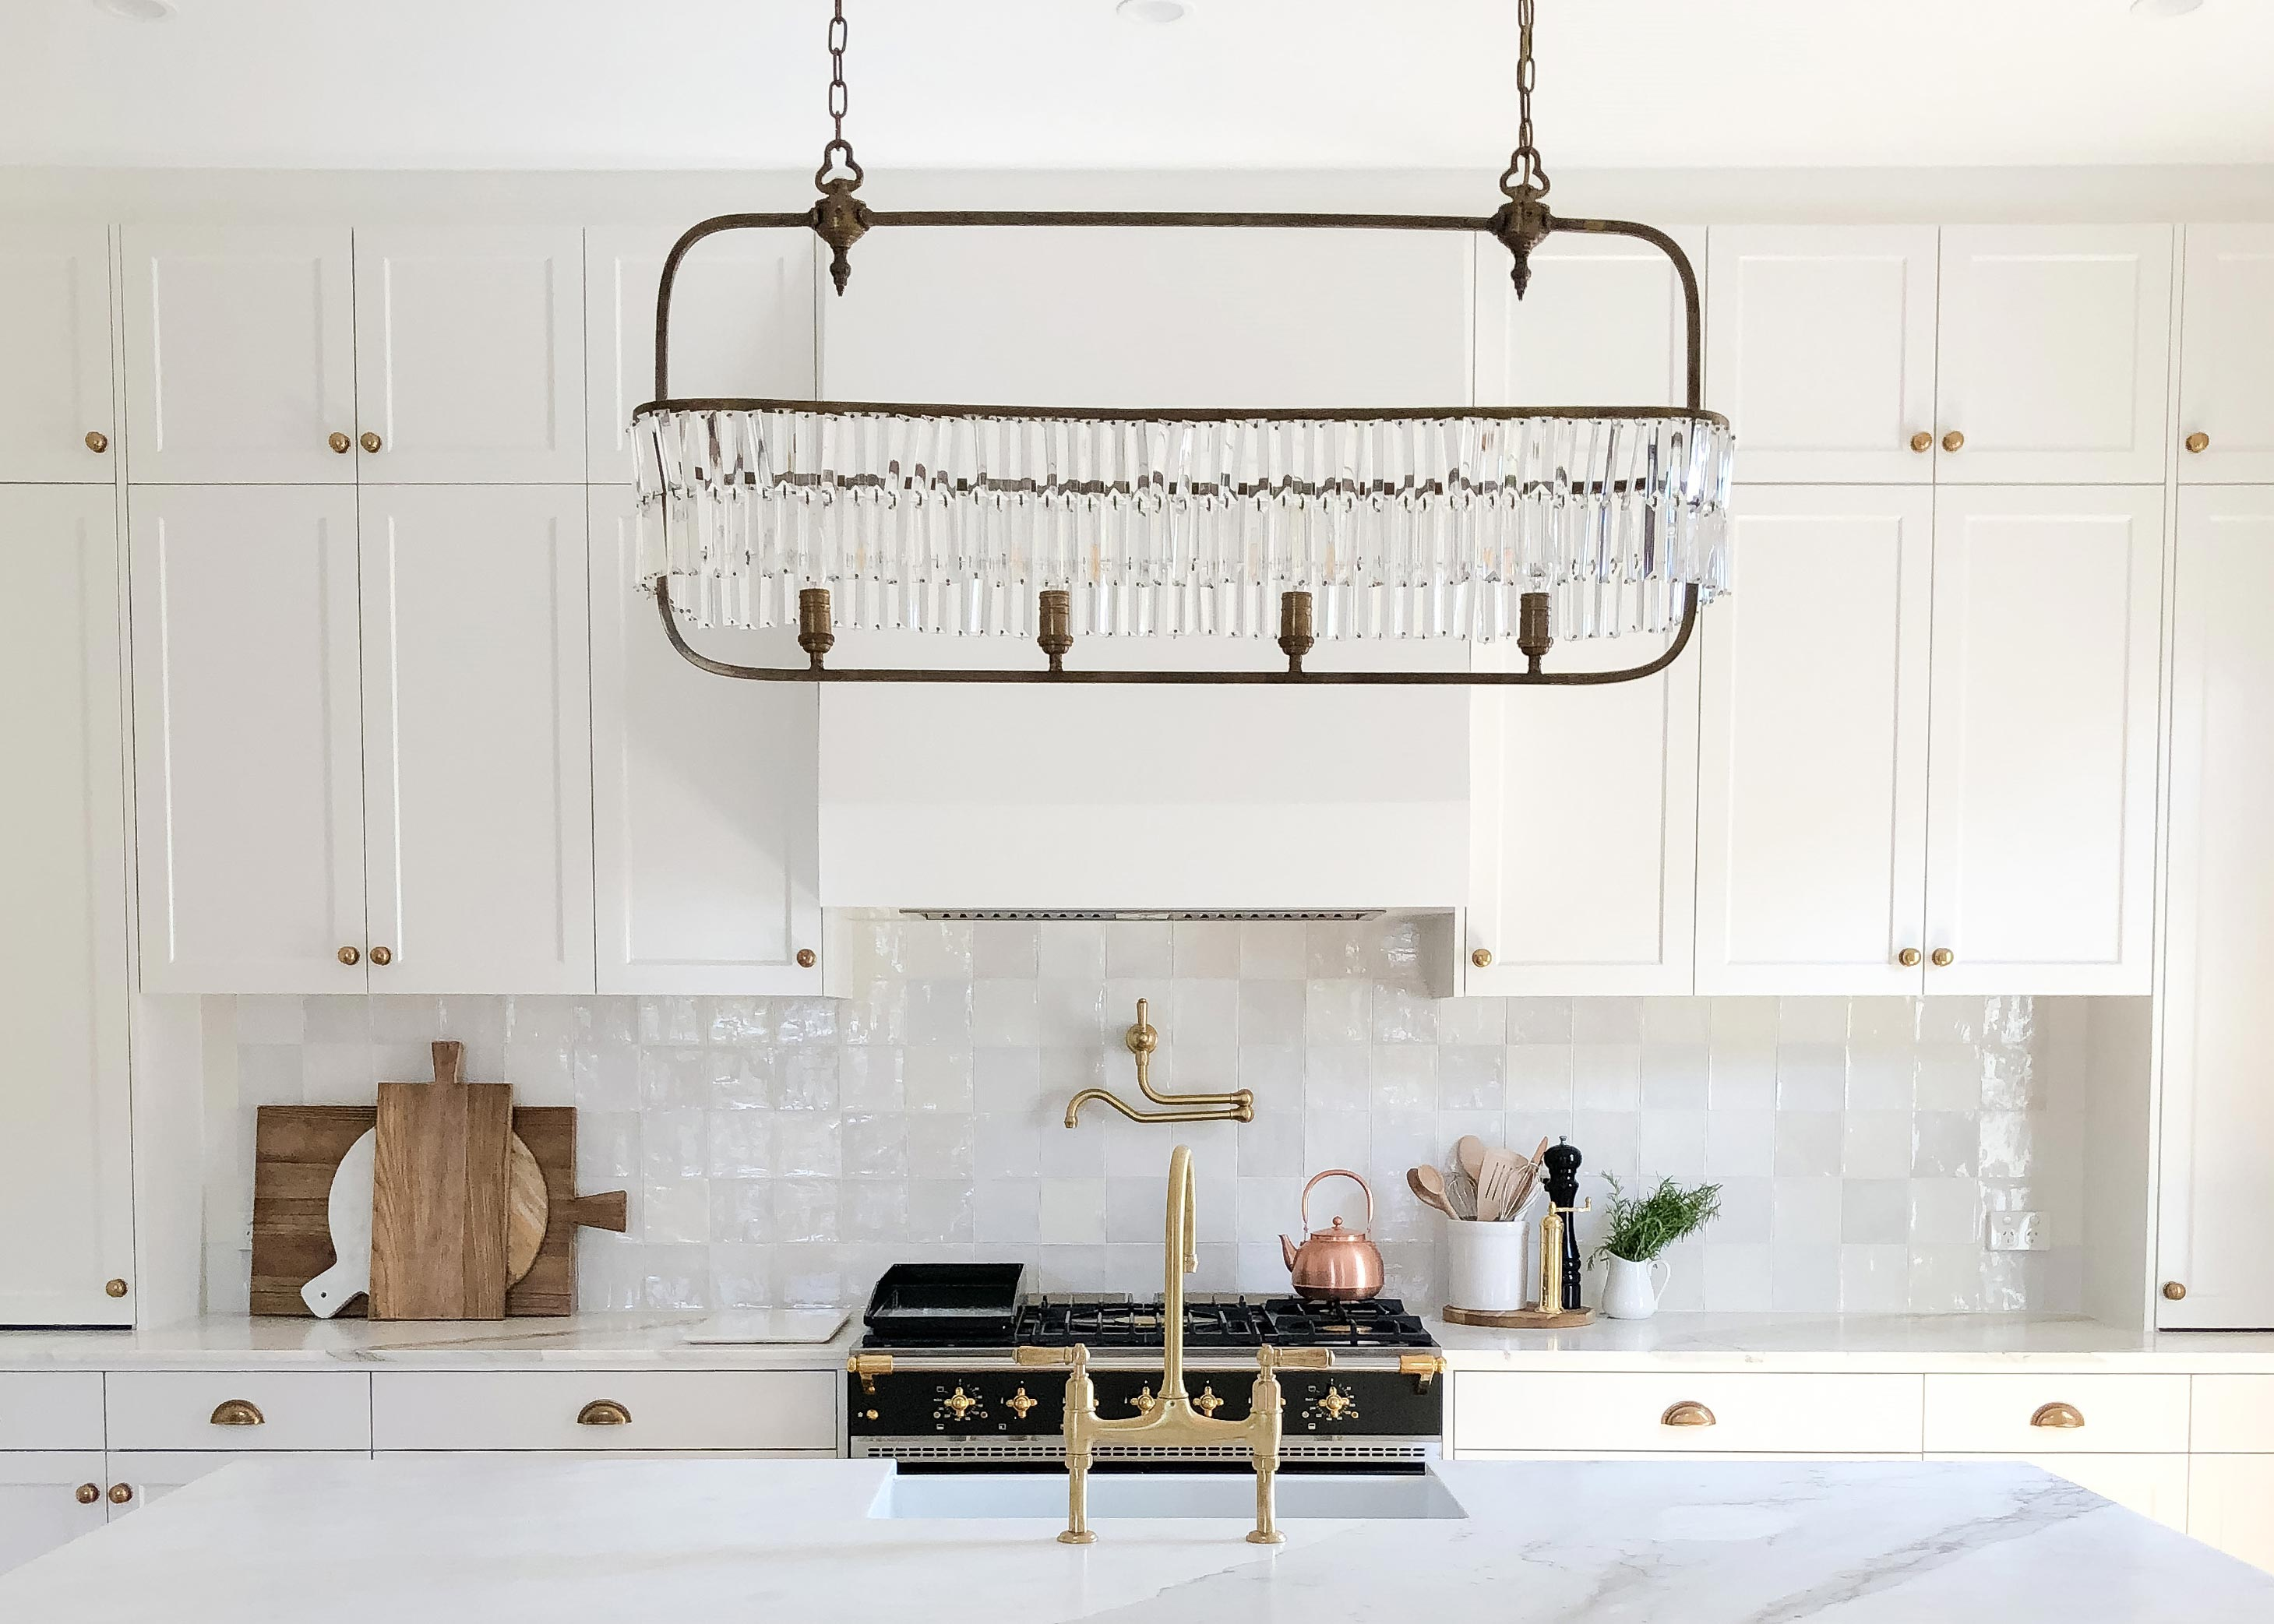 Carla Salsone has renovated their spectacular 1920s period home. Incorporating lots of brass and marble details gives this kitchen a luxurious feel. The UM-9S sits proudly above the gas cooktop. Unseen and unheard, simply perfect.